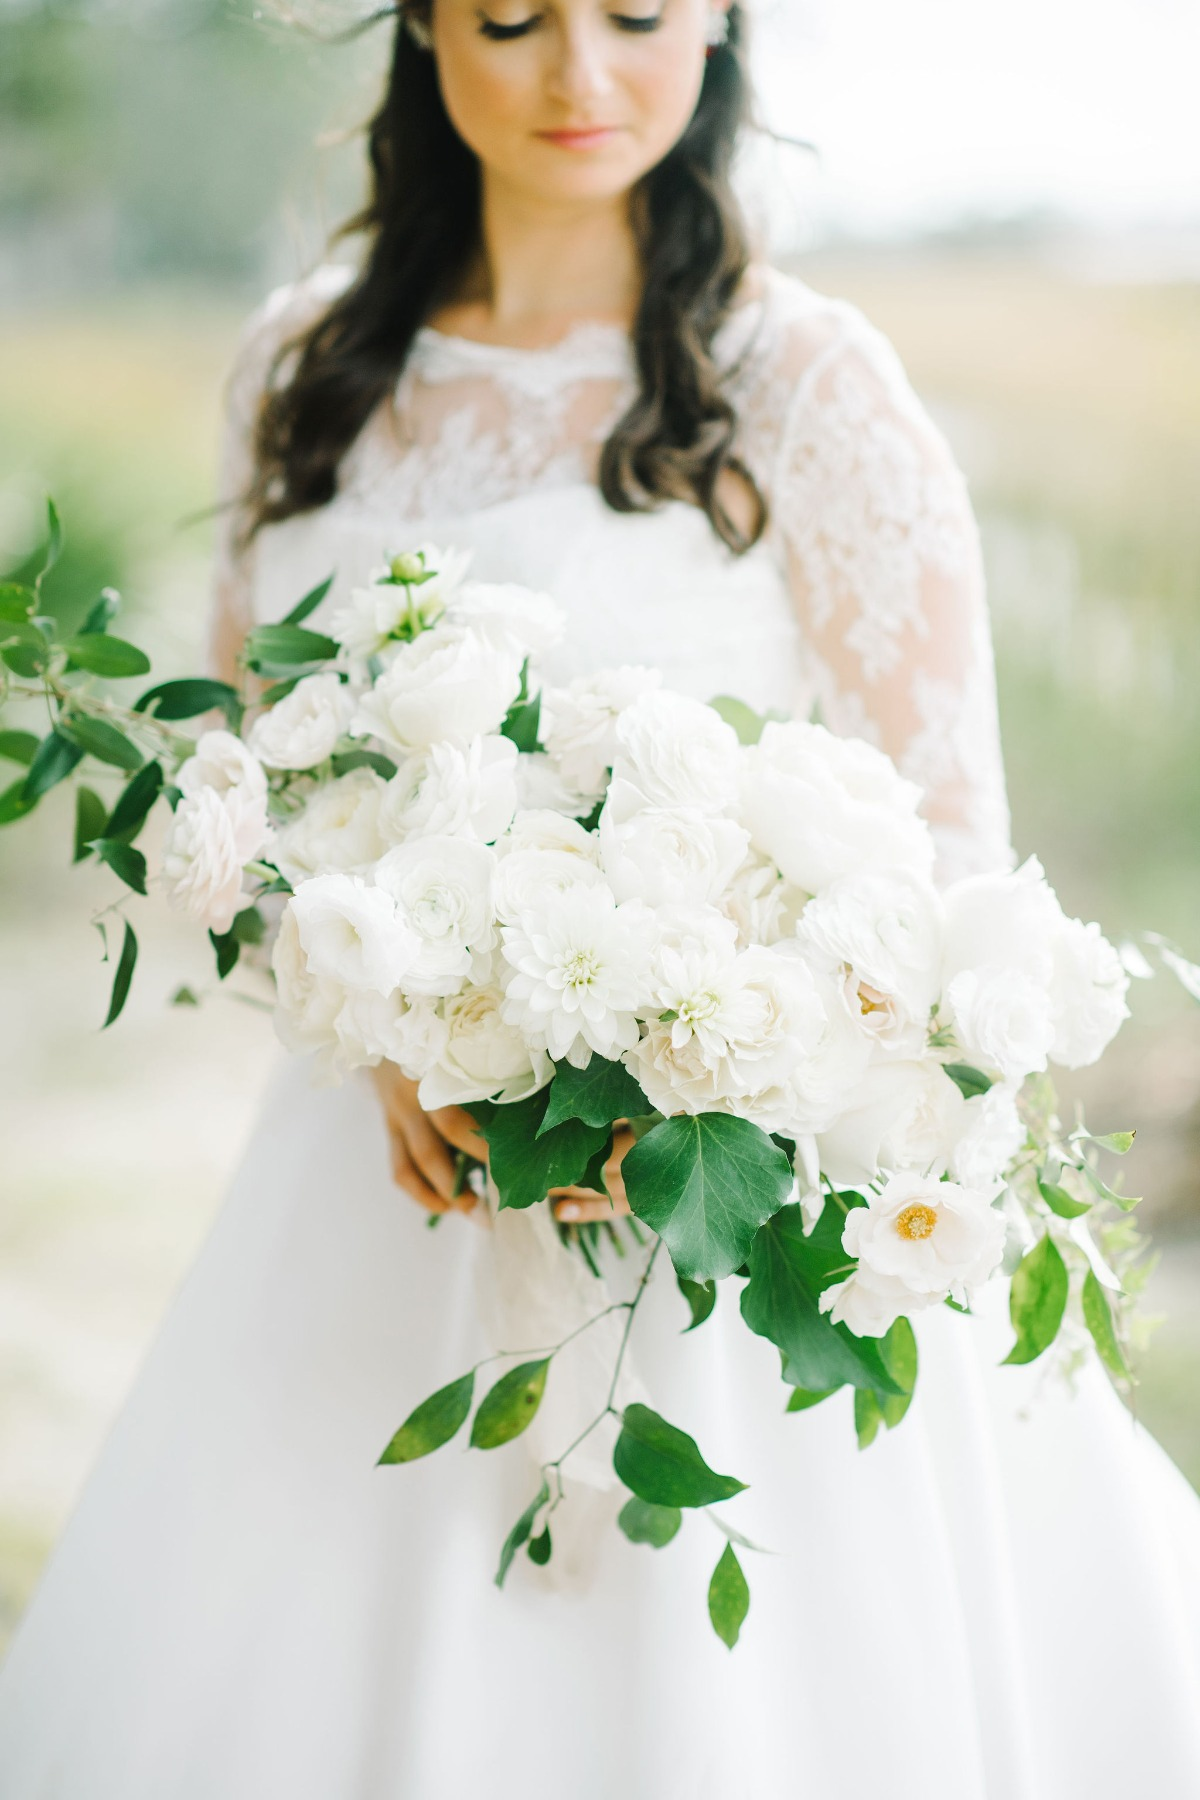 all white wedding bouquet with a small amount of greenery designed by Petaloso